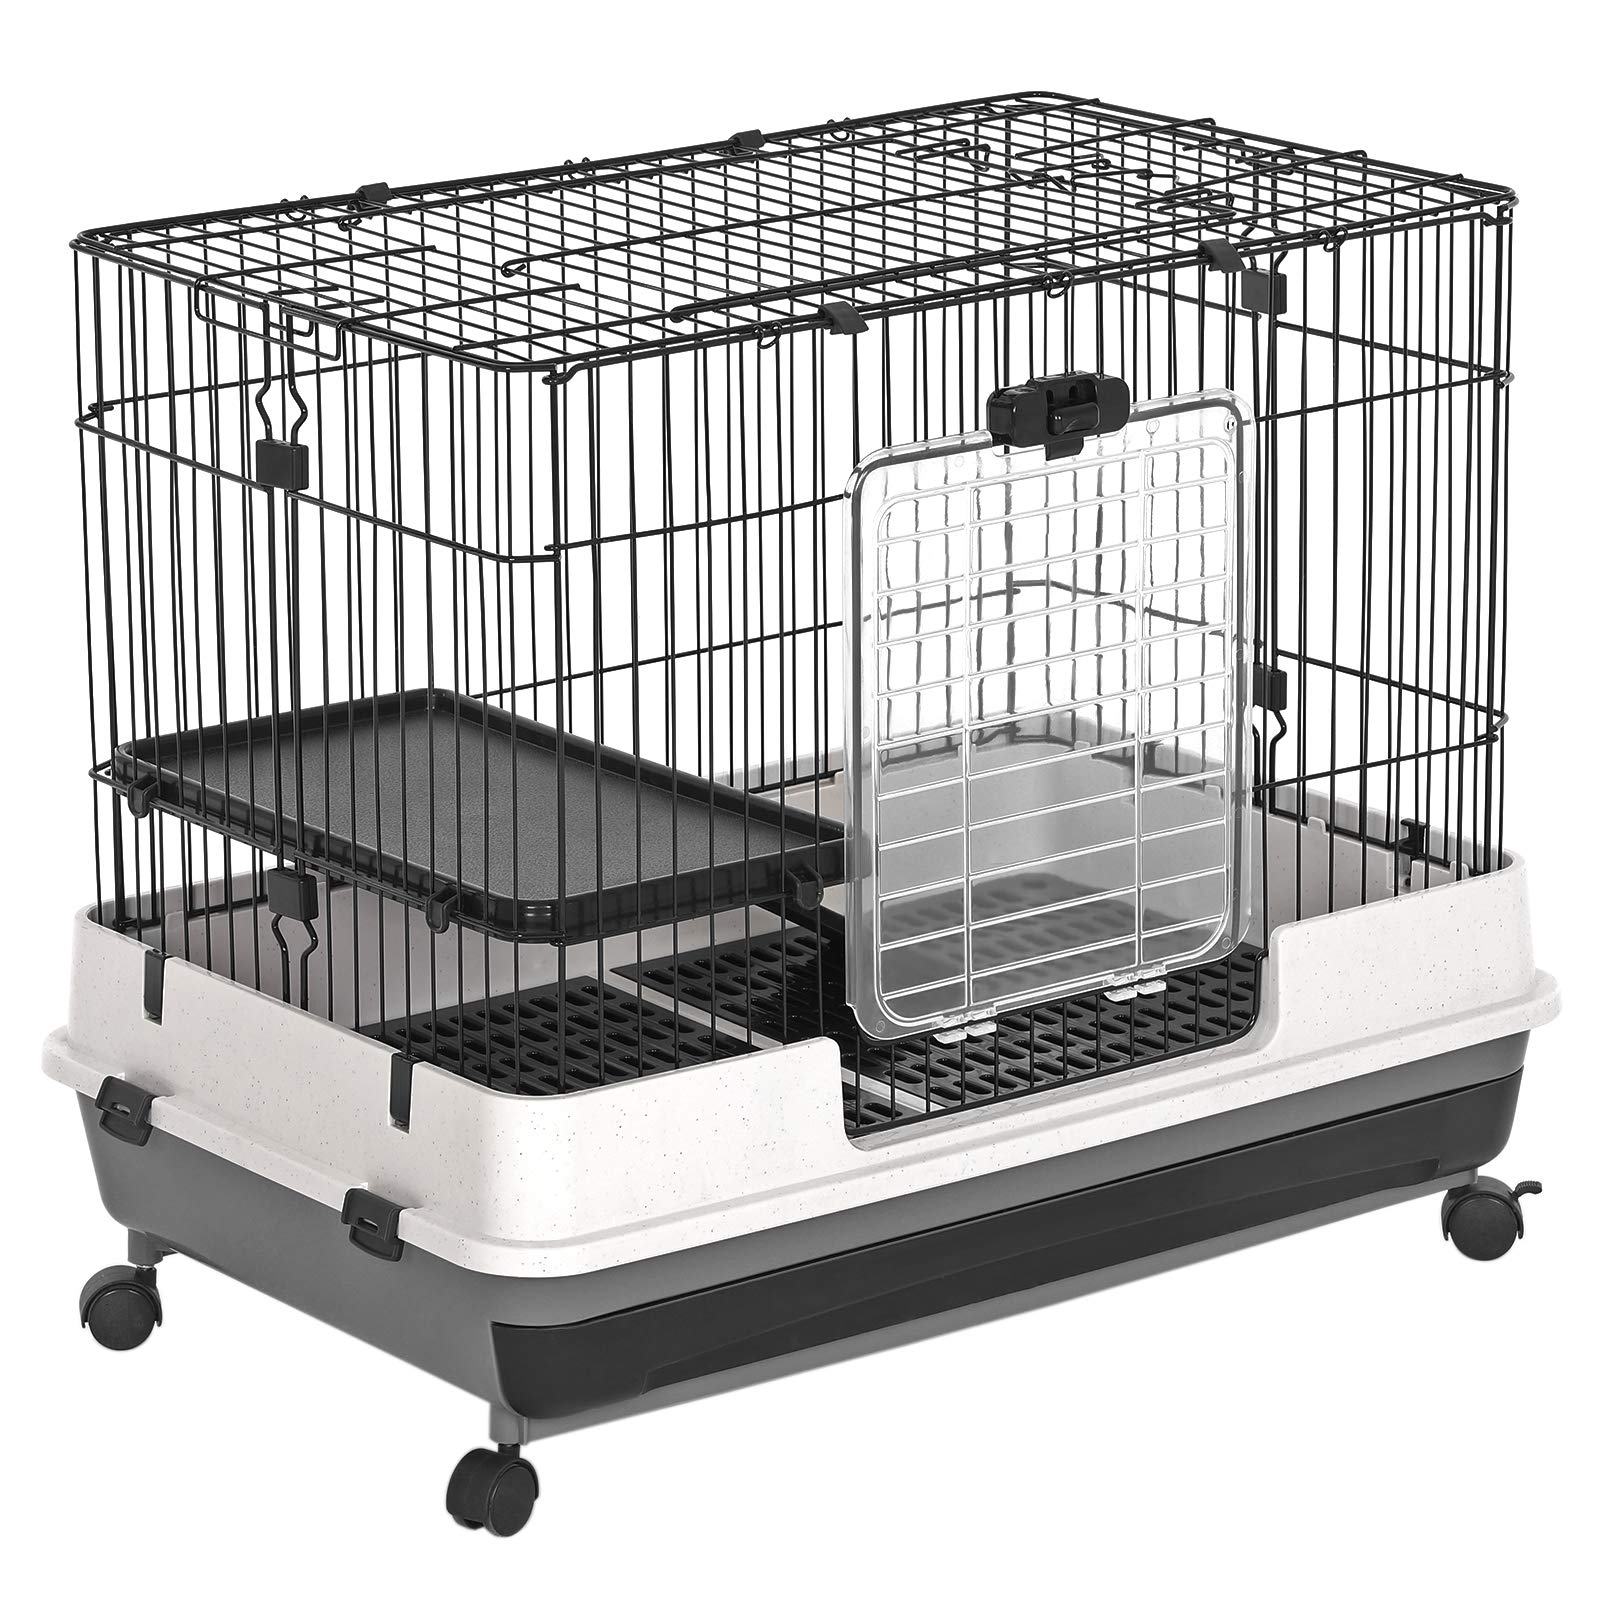 SONGMICS Small Animal Pet Cage, Ferret Chinchilla Playpen Hutch with Platform, Ramp, Leakproof Litter Tray, Double Doors, and Lockable Wheels, Black UPSC01BK by SONGMICS